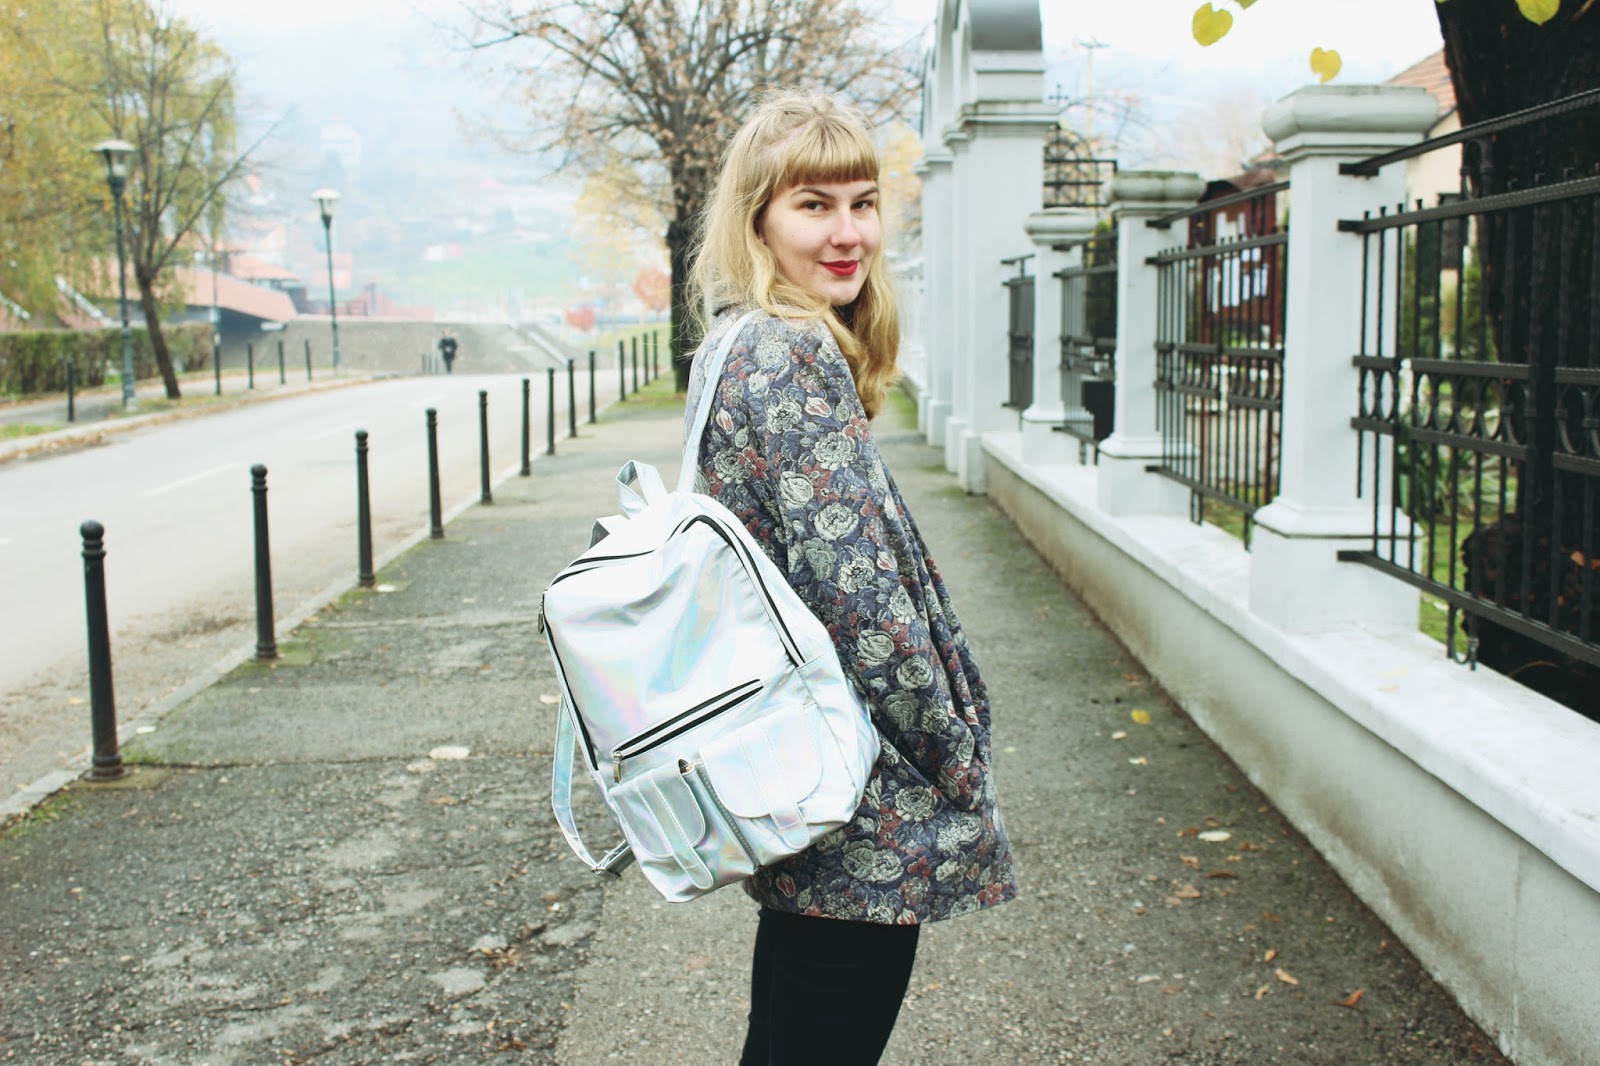 filipa canic, youarethepoet, you are the poet blog, filipa canic blog, dresslily review, backpack,